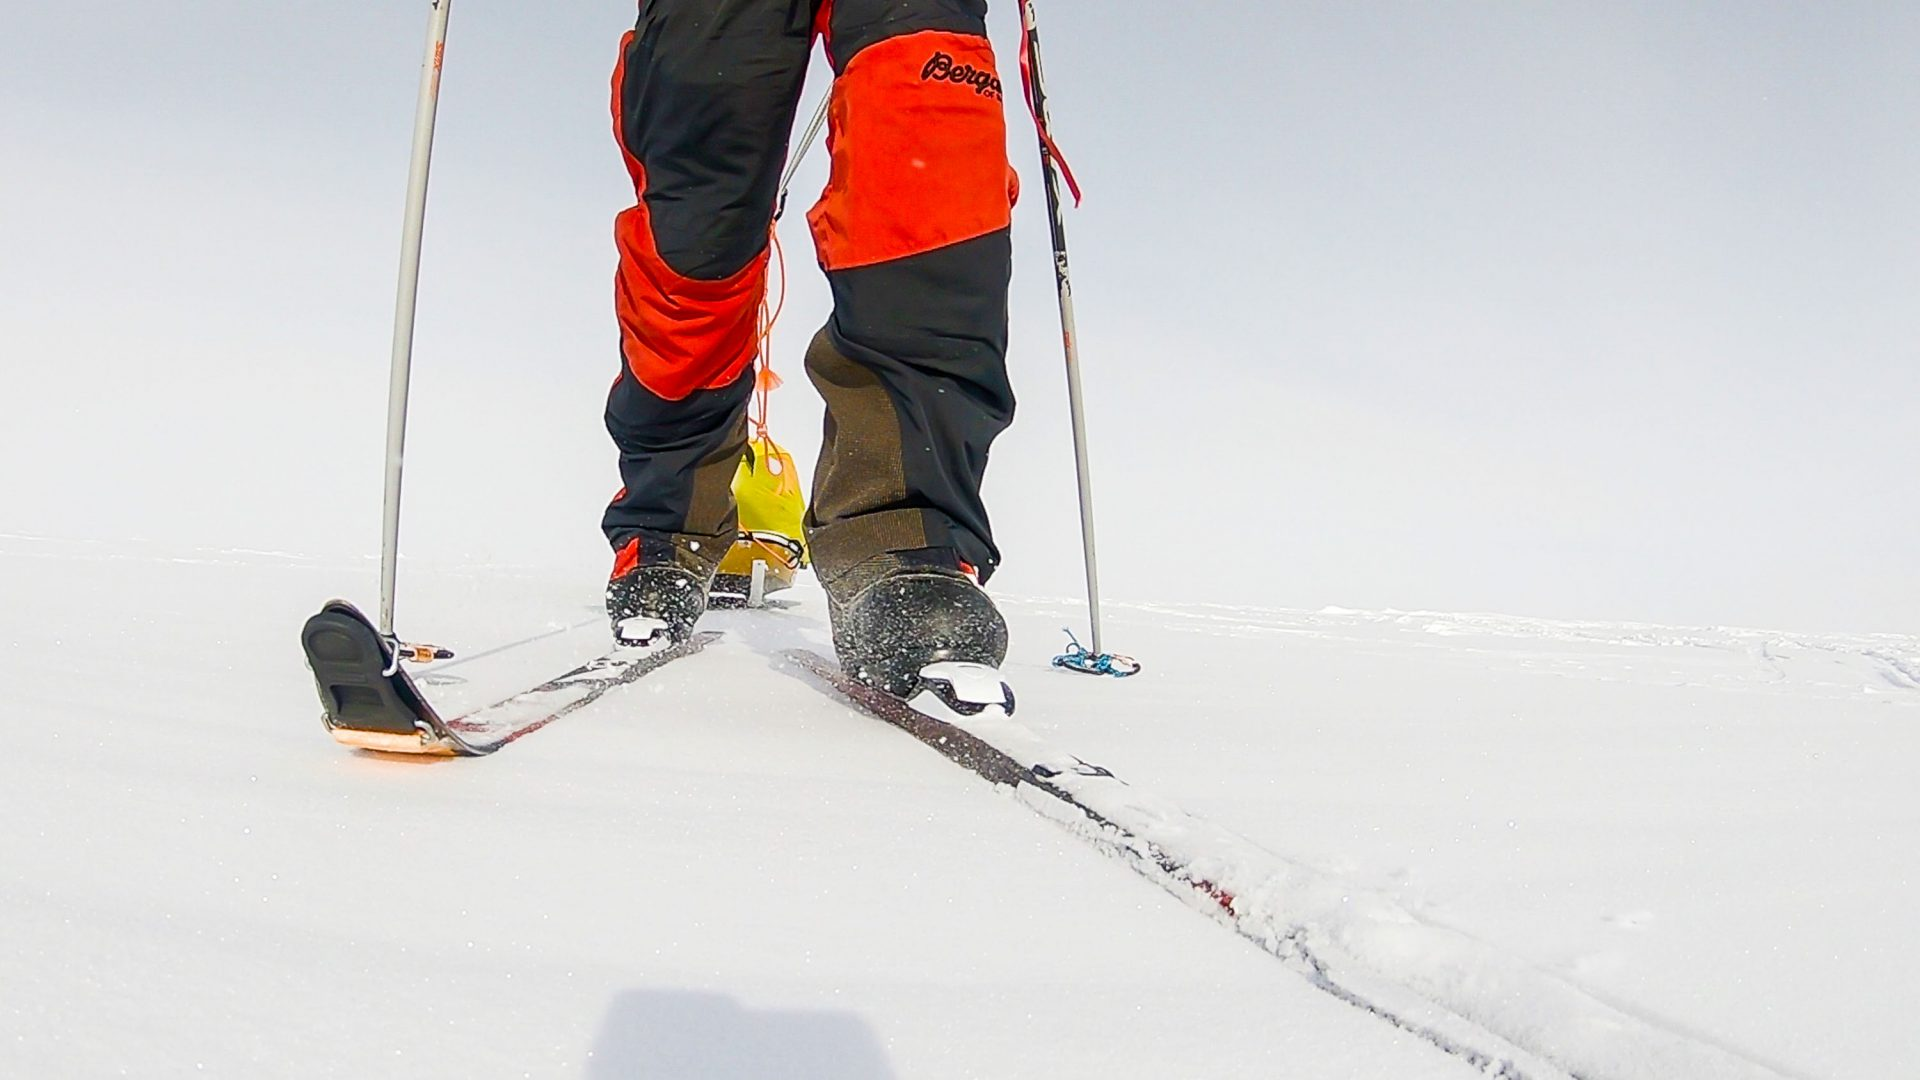 Colin O'Brady's custom-made skis for his unsupported journey through Antarctica.